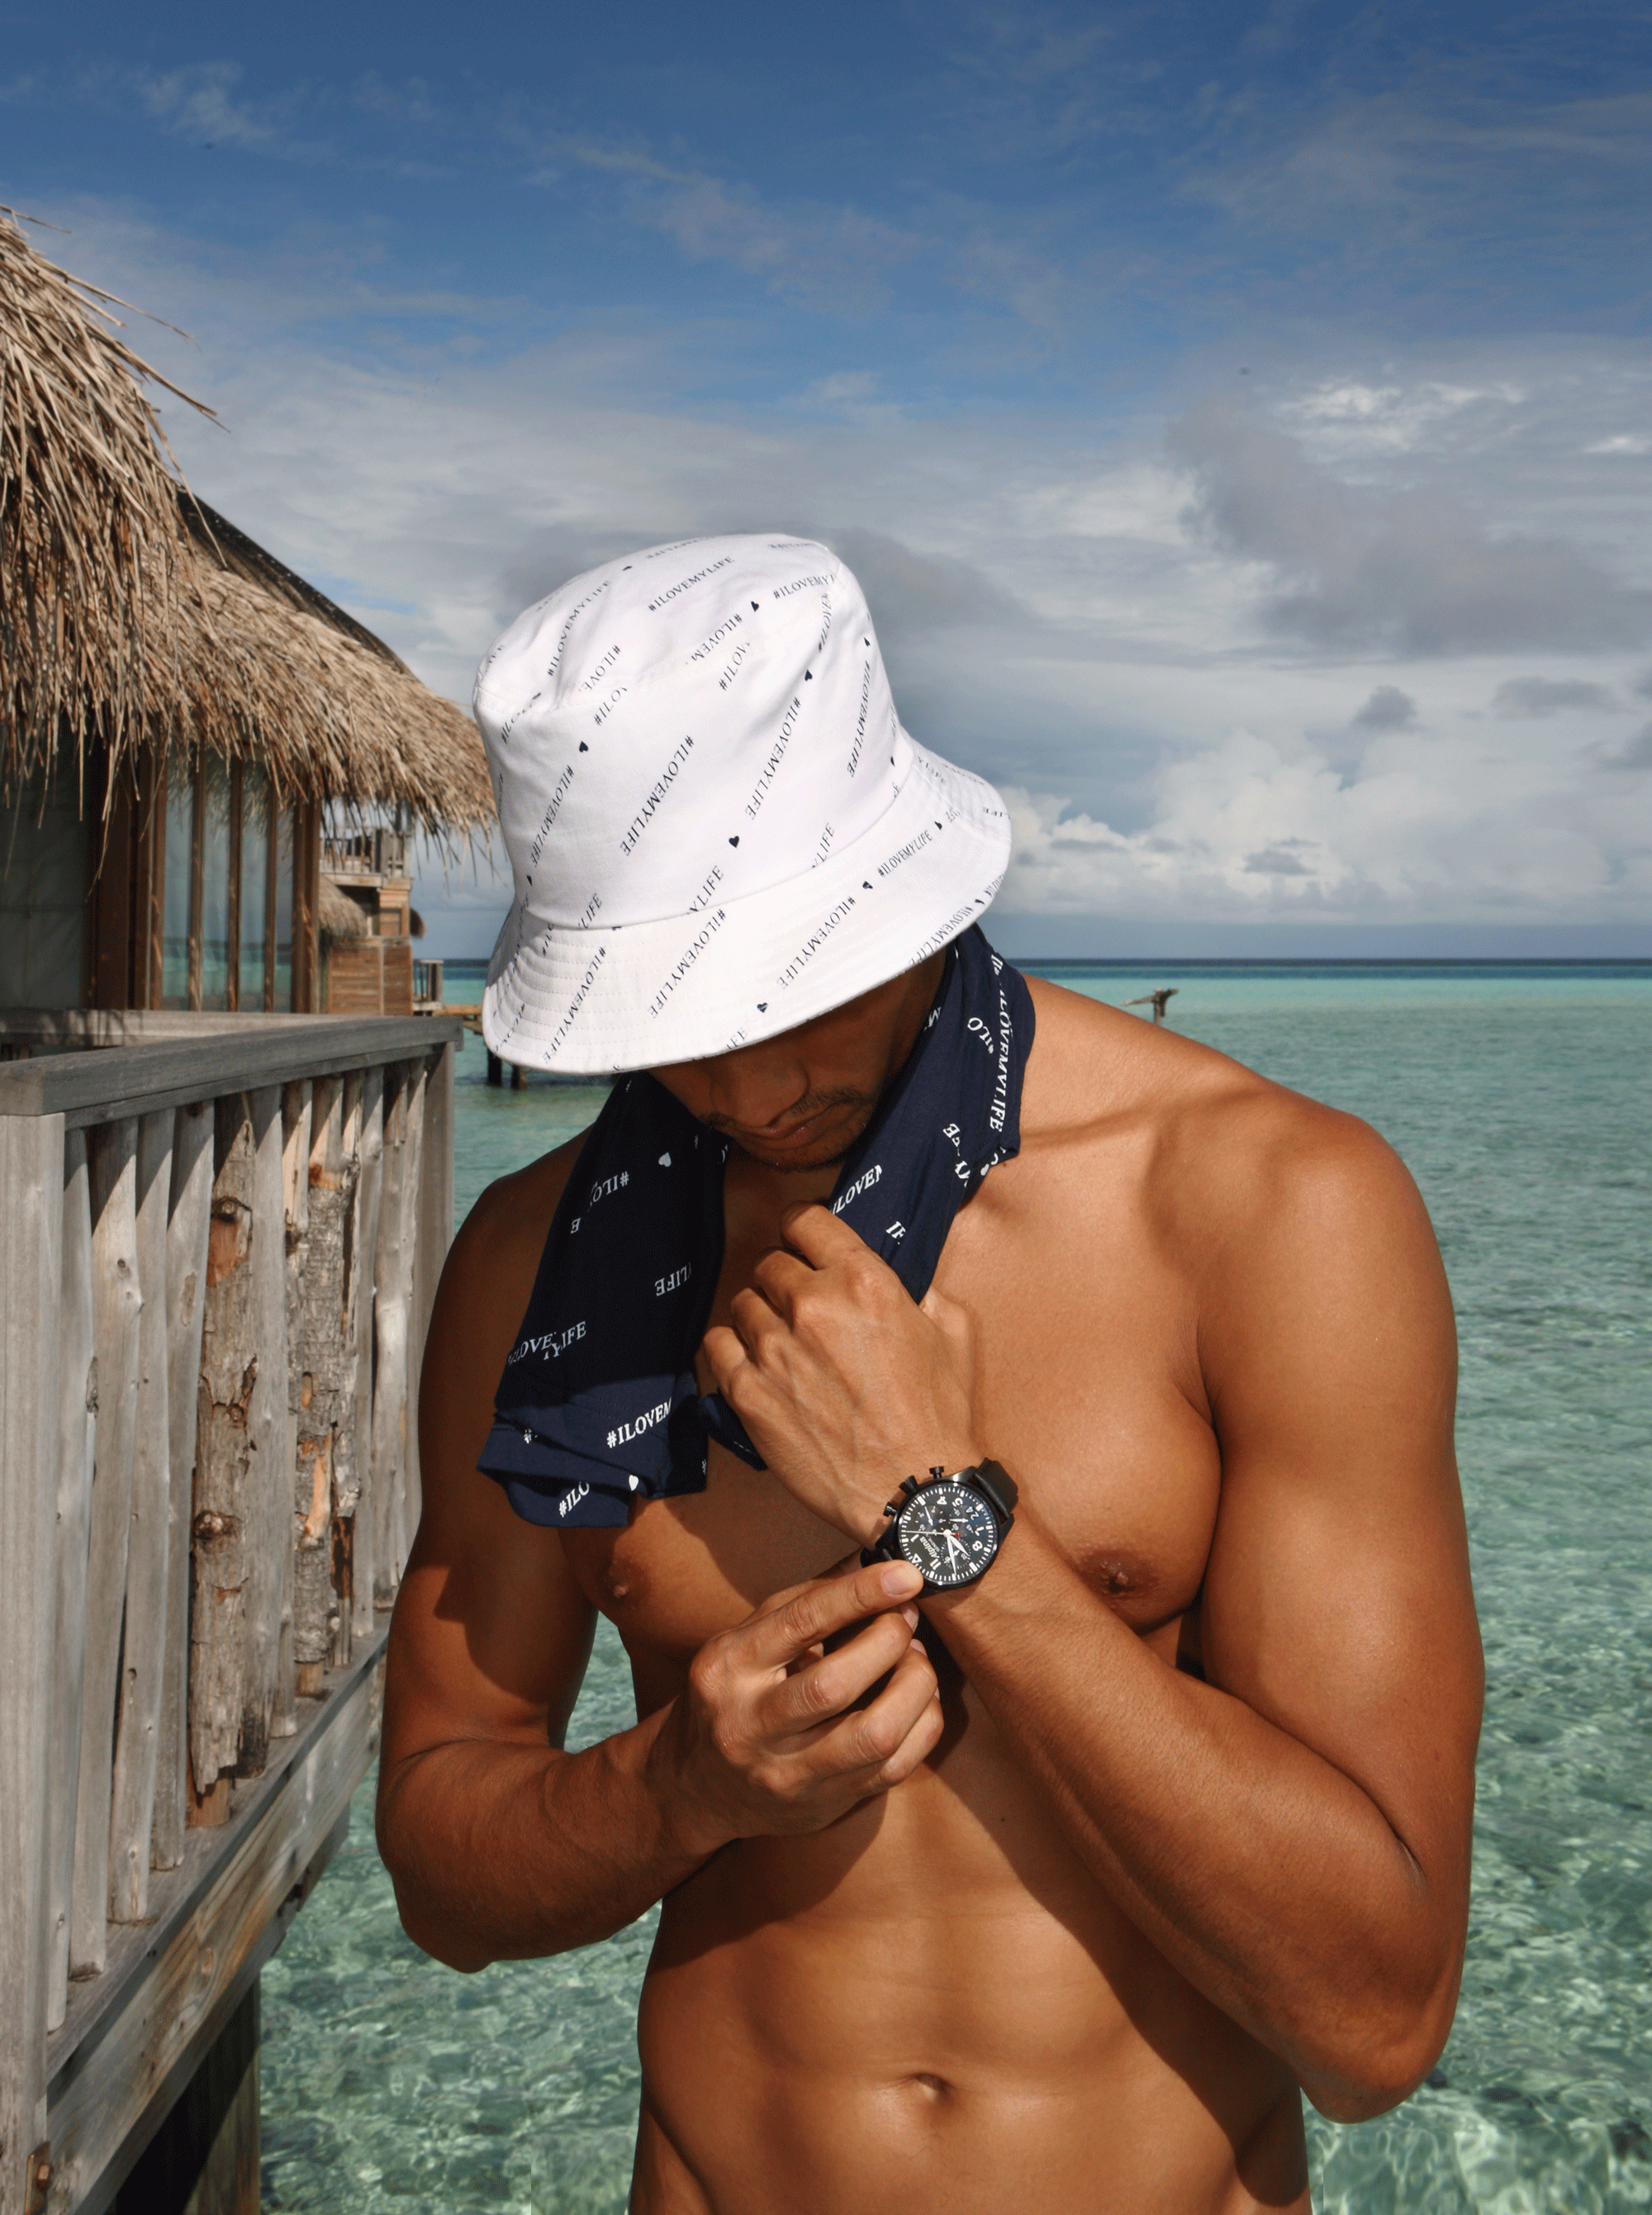 hat and T shirt : Everyday Karmakamet  watch : ALPINA STARTIMER PILOT BIG DATE CHRONOGRAPH